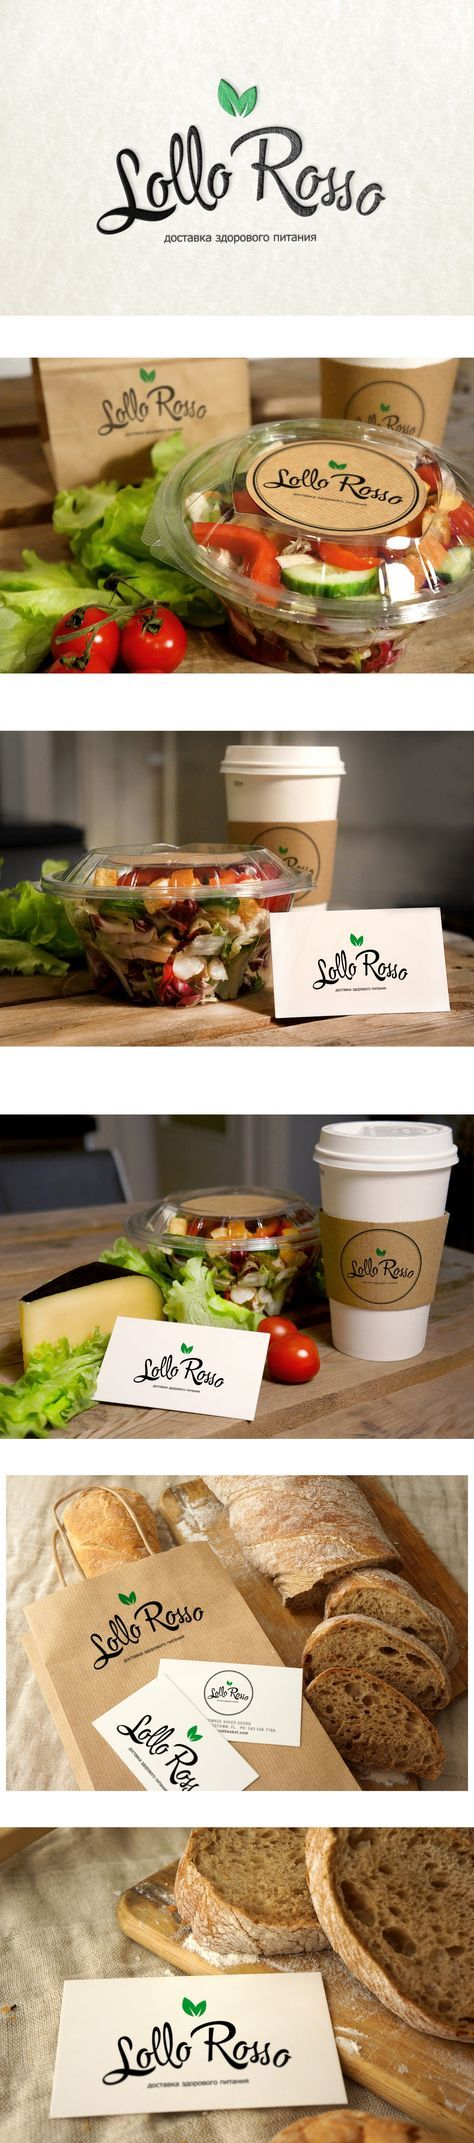 The logo of the delivery service of healthy food - Lollo Rosso. Service in the city of Kazan, the preparation and delivery of a balanced healthy diet. Which allows you not only to lose weight, maintain or gain muscle mass, but also to enjoy truly delicious dishes without rigid framework and unnecessary restrictions in your diet.